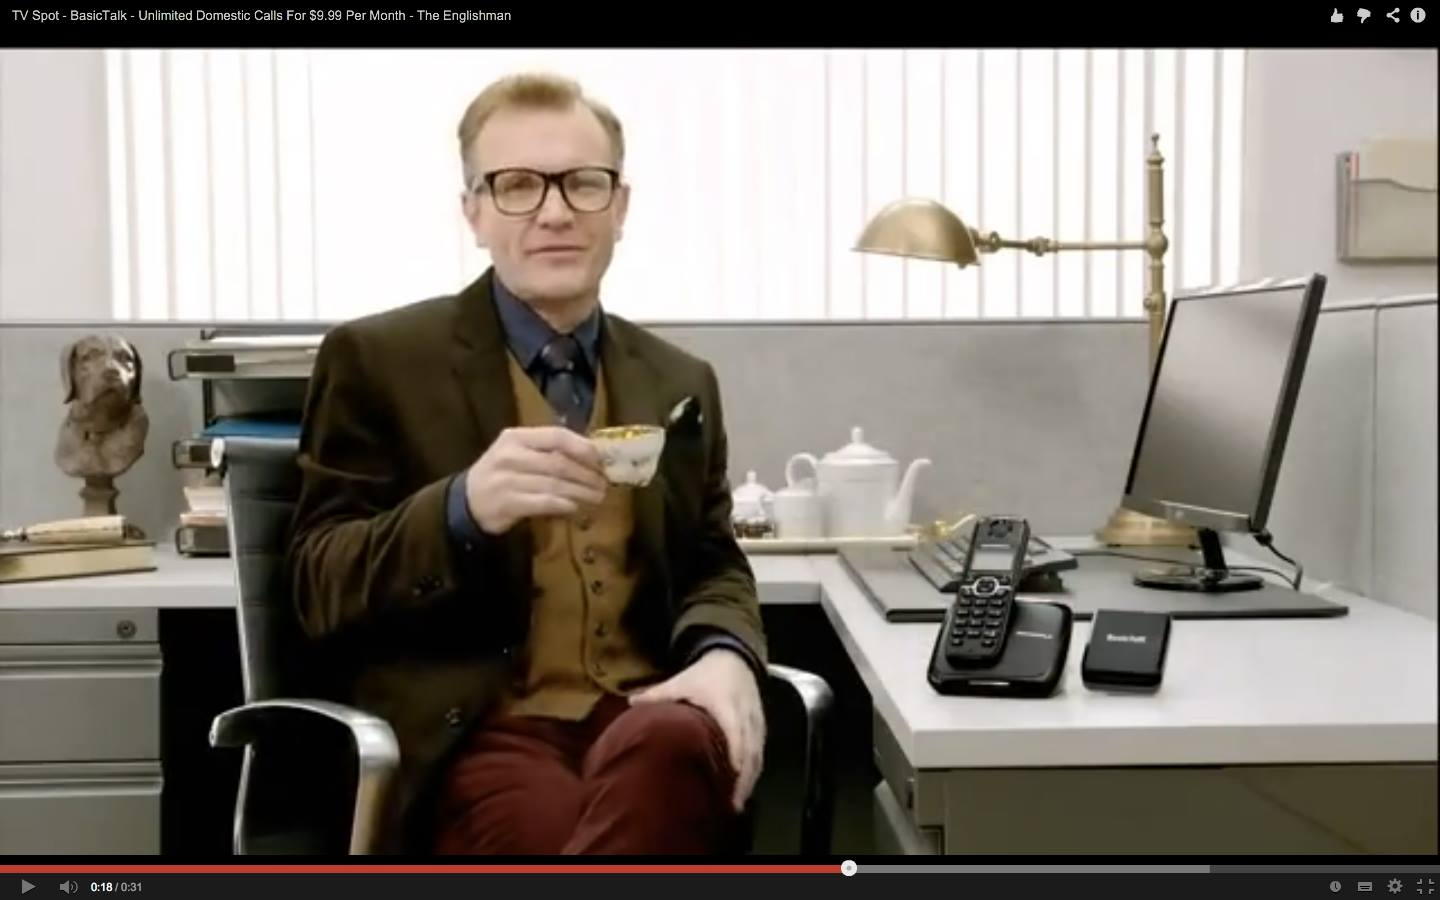 Vonage Commercial: The Englishman